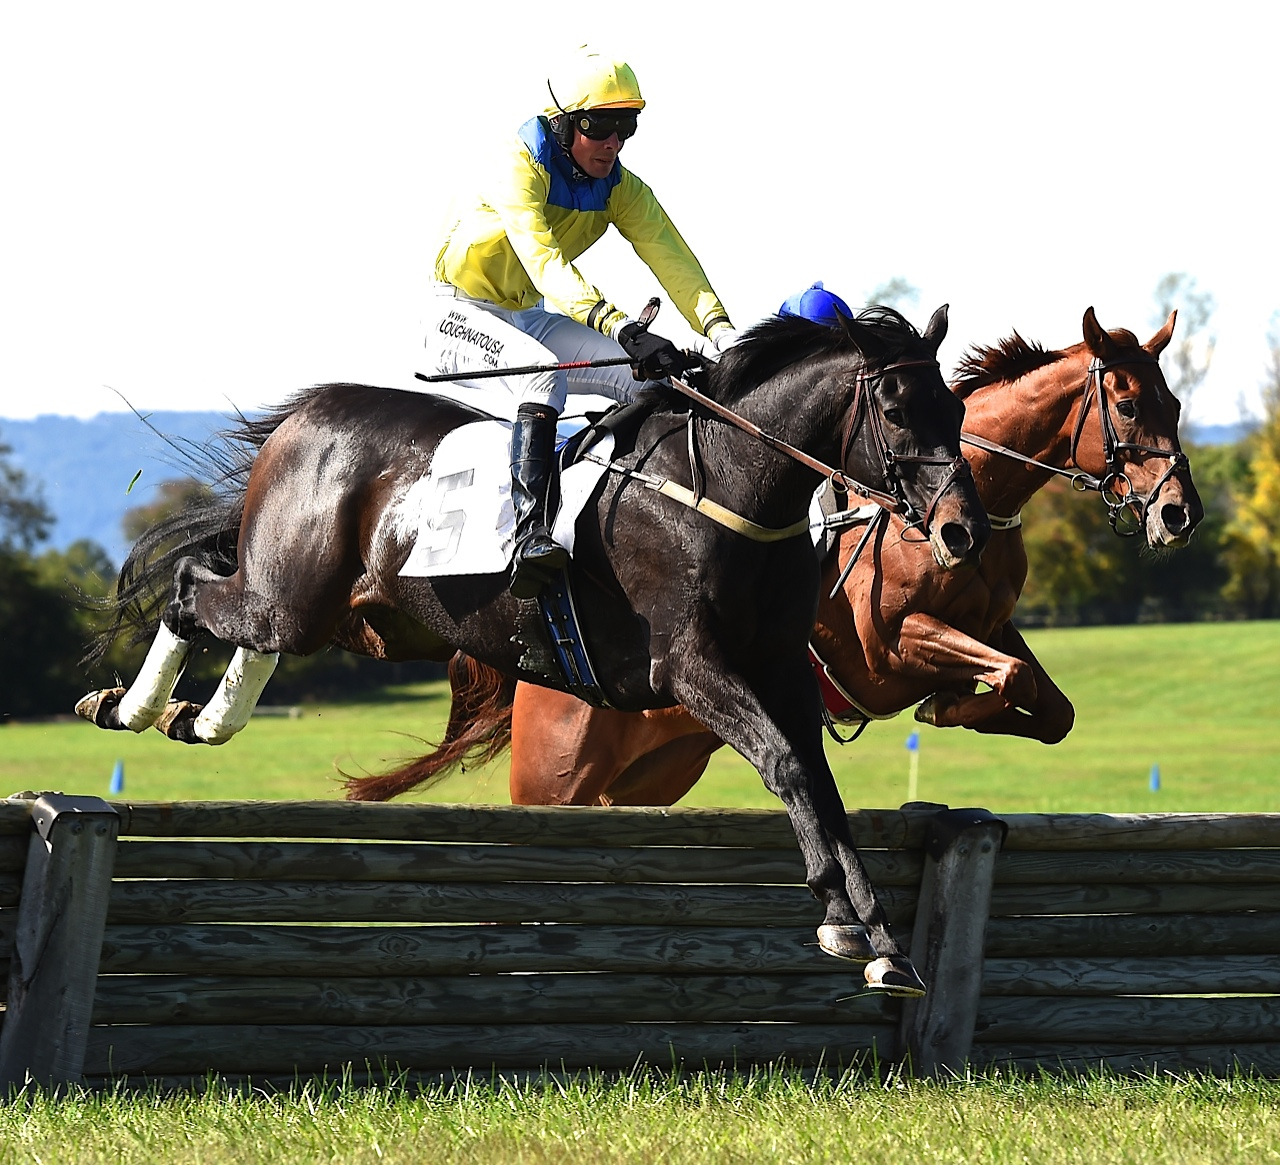 Oakwood Stable's Country Cousin was 1st in the $15, 000 timber race. Adios Diablo was 2nd. Photo courtesy Lees.